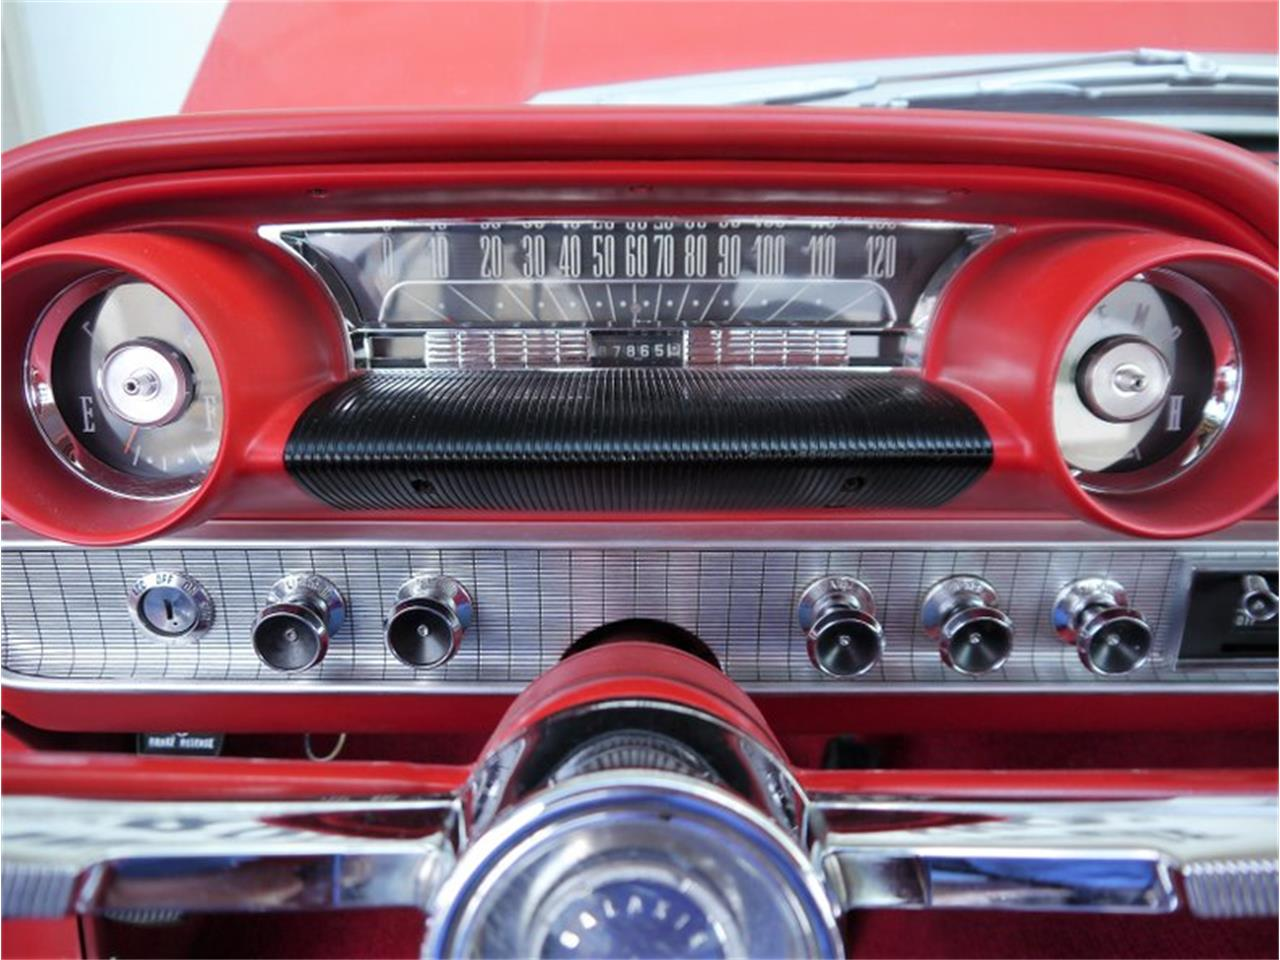 1963 Ford Galaxie 500 for sale in Alsip, IL – photo 20